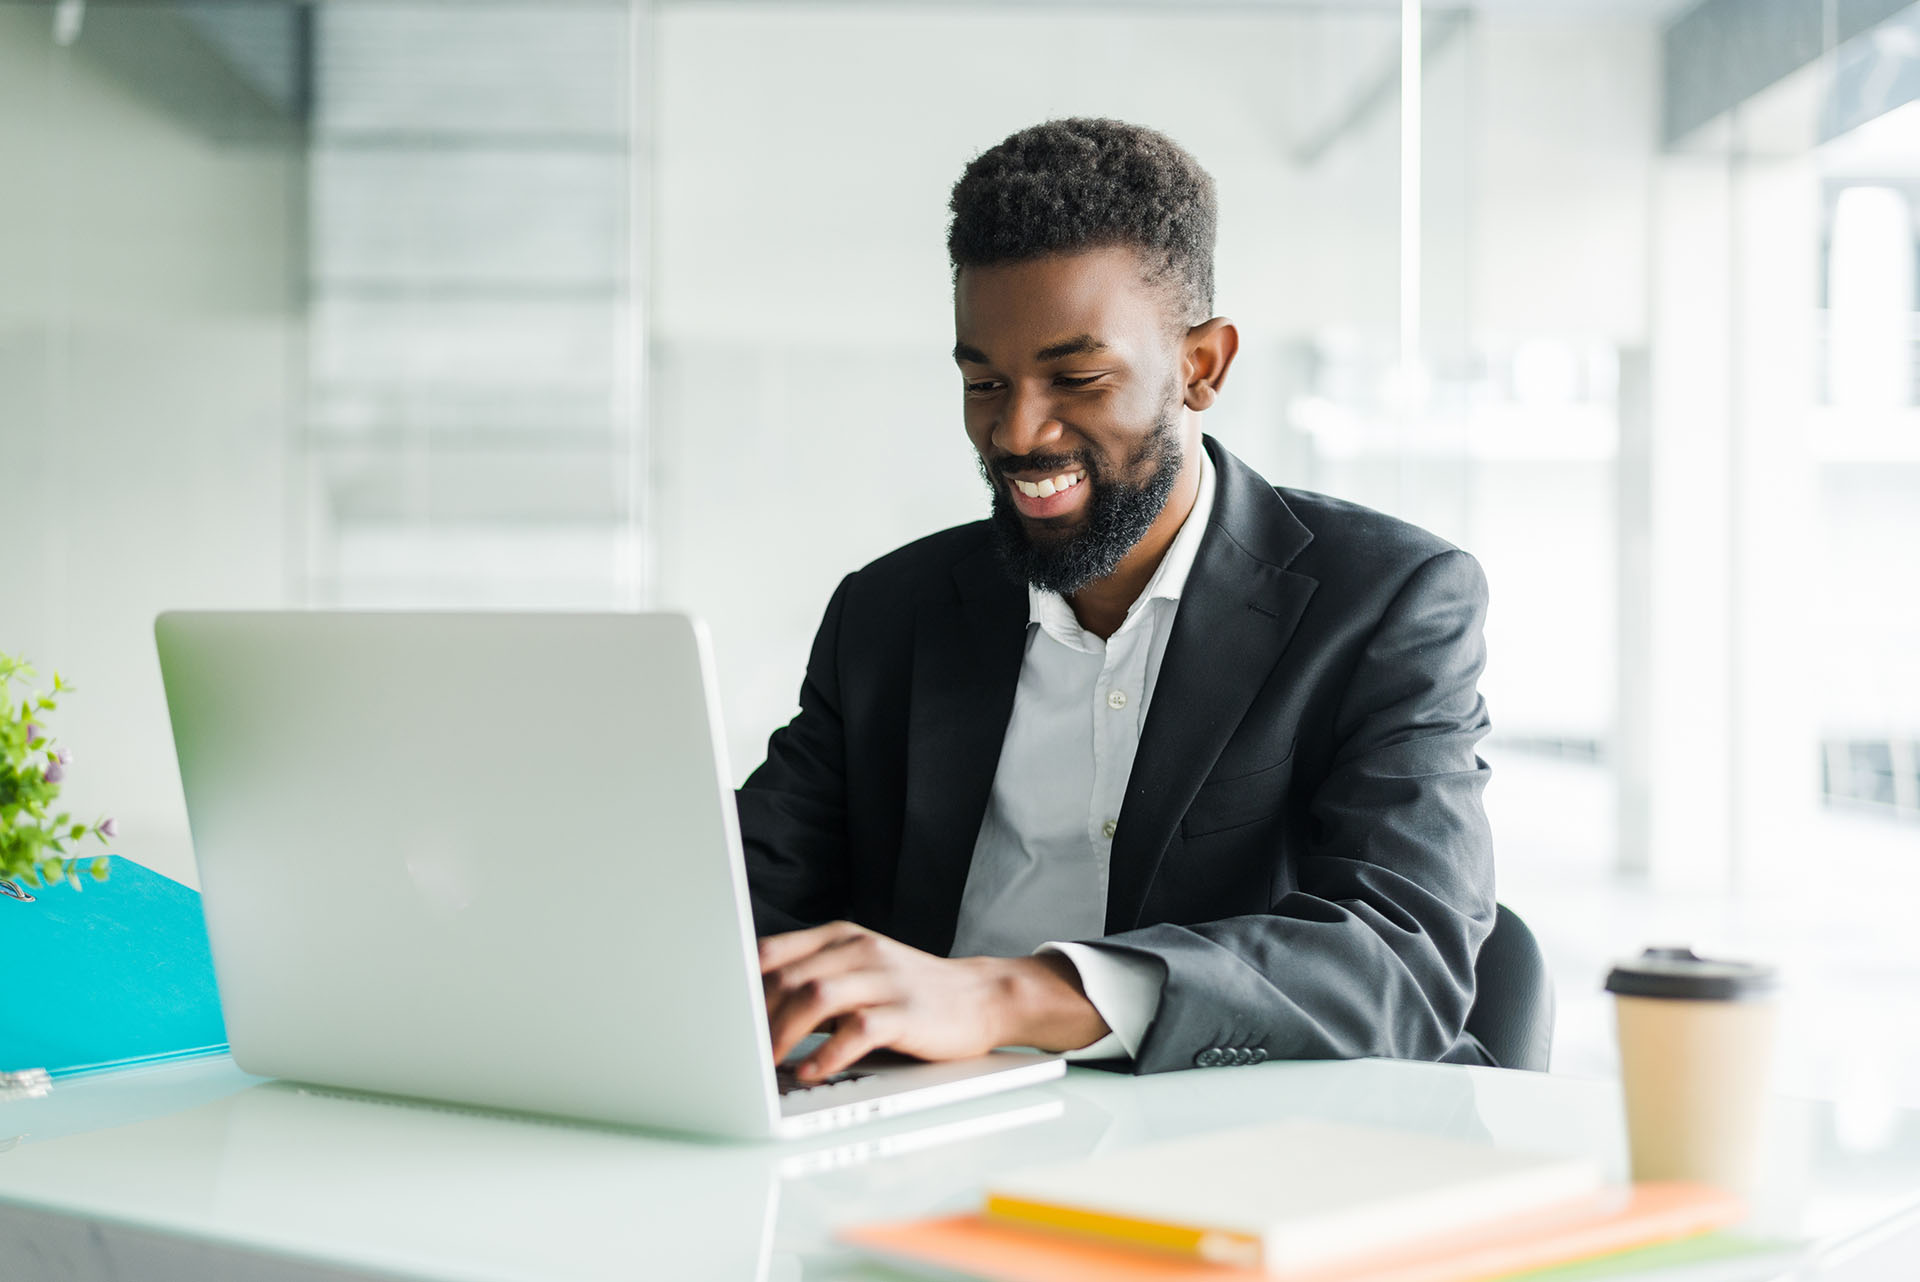 Thoughtful African American businessman wearing glasses using laptop, pondering project, business strategy, puzzled employee executive looking at laptop screen, reading email, making decision